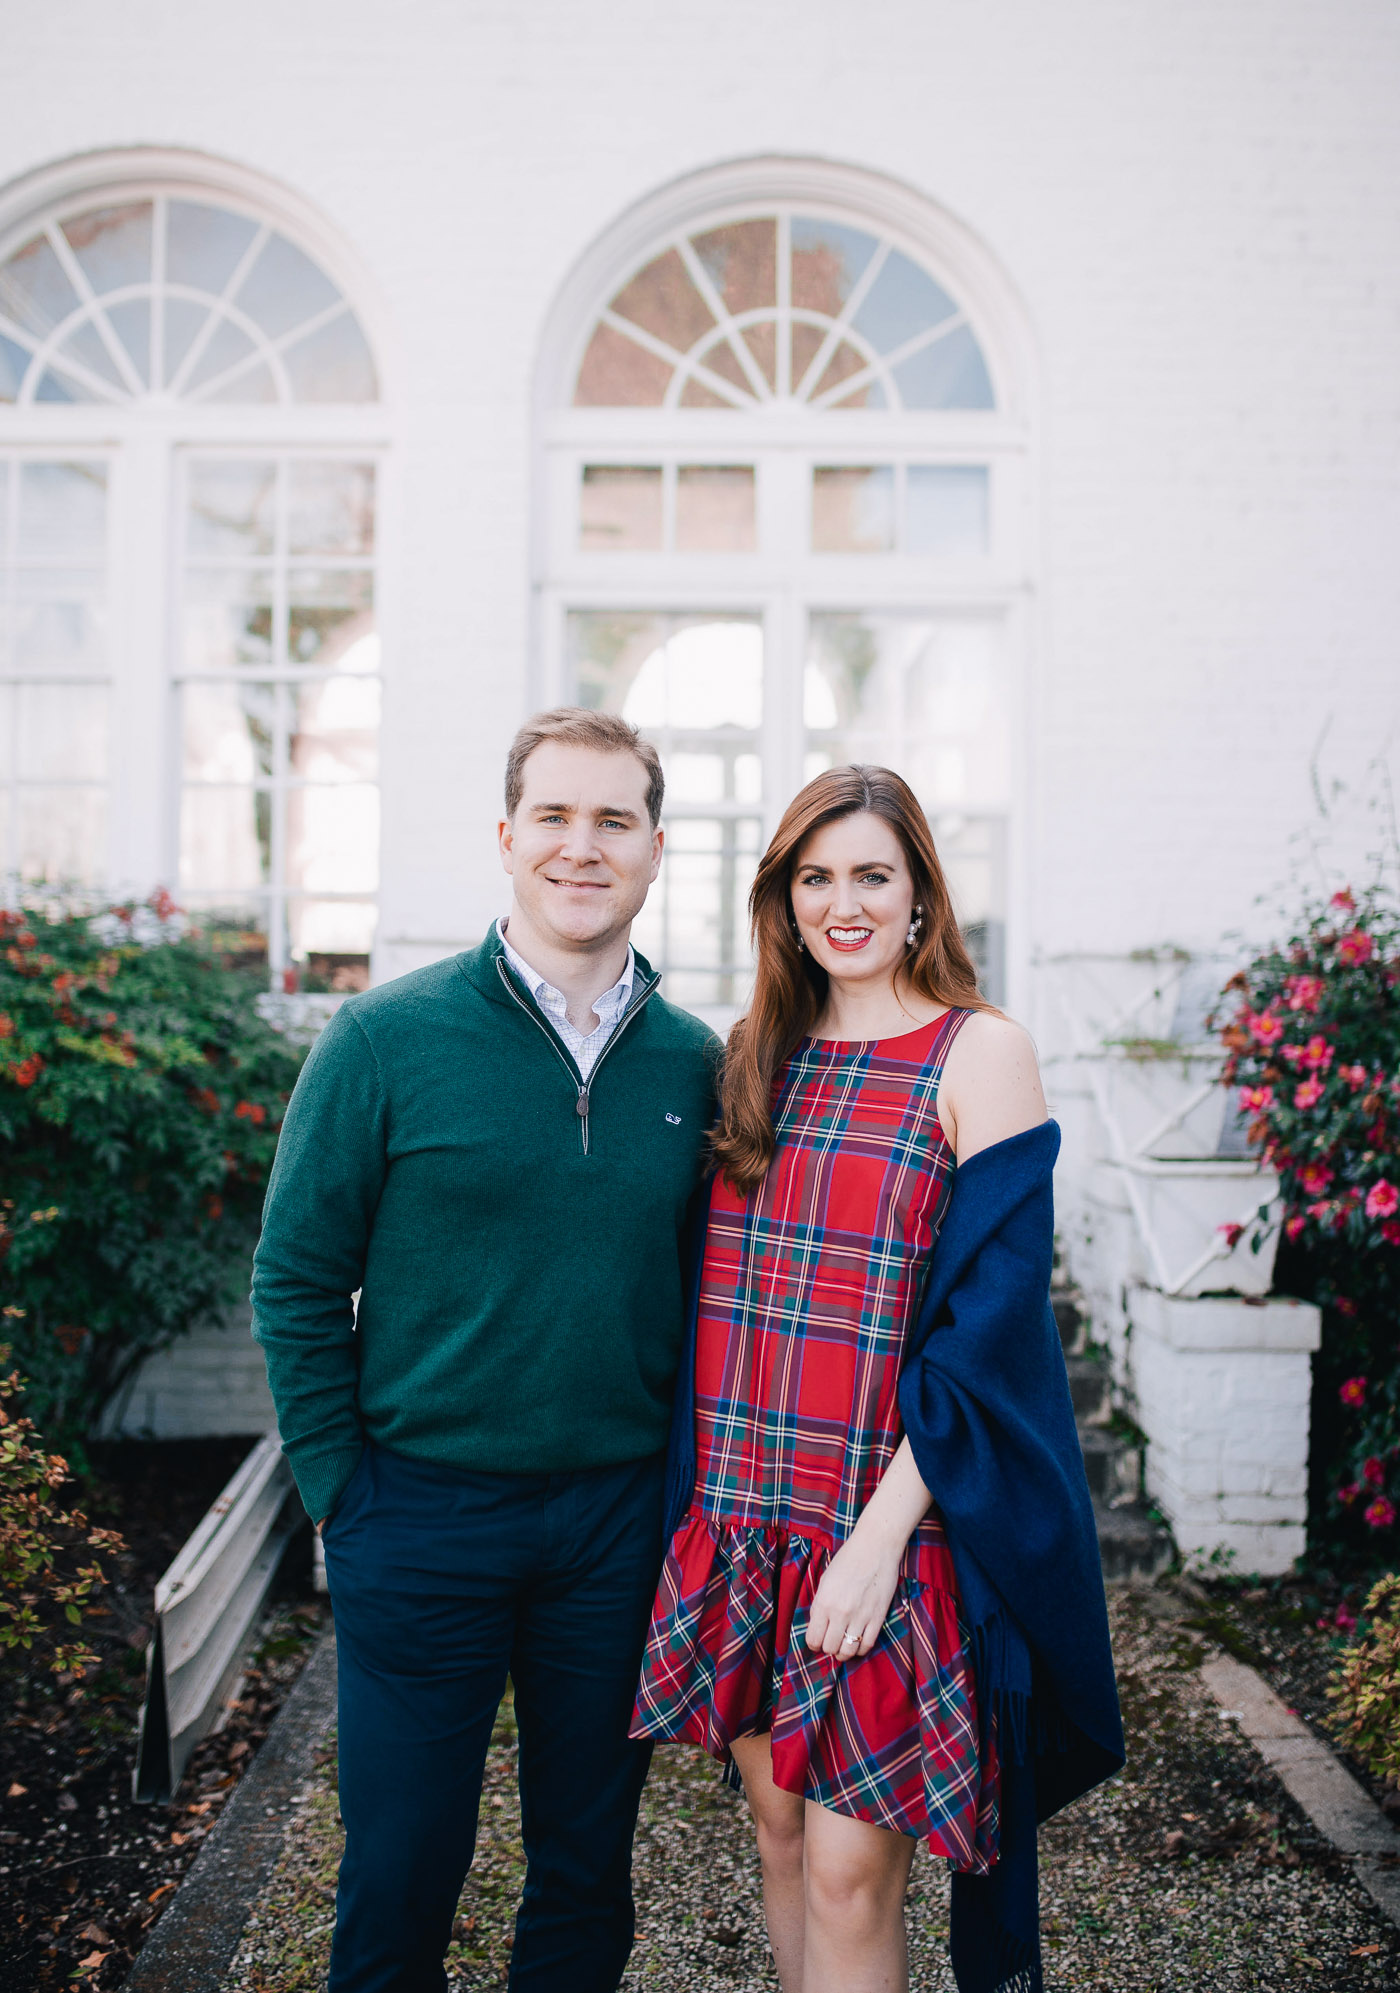 A guide to styling your own Christmas card photos in partnership with Vineyard Vines by Lauren Cermak of the Southern lifestyle blog, Going For Grace.